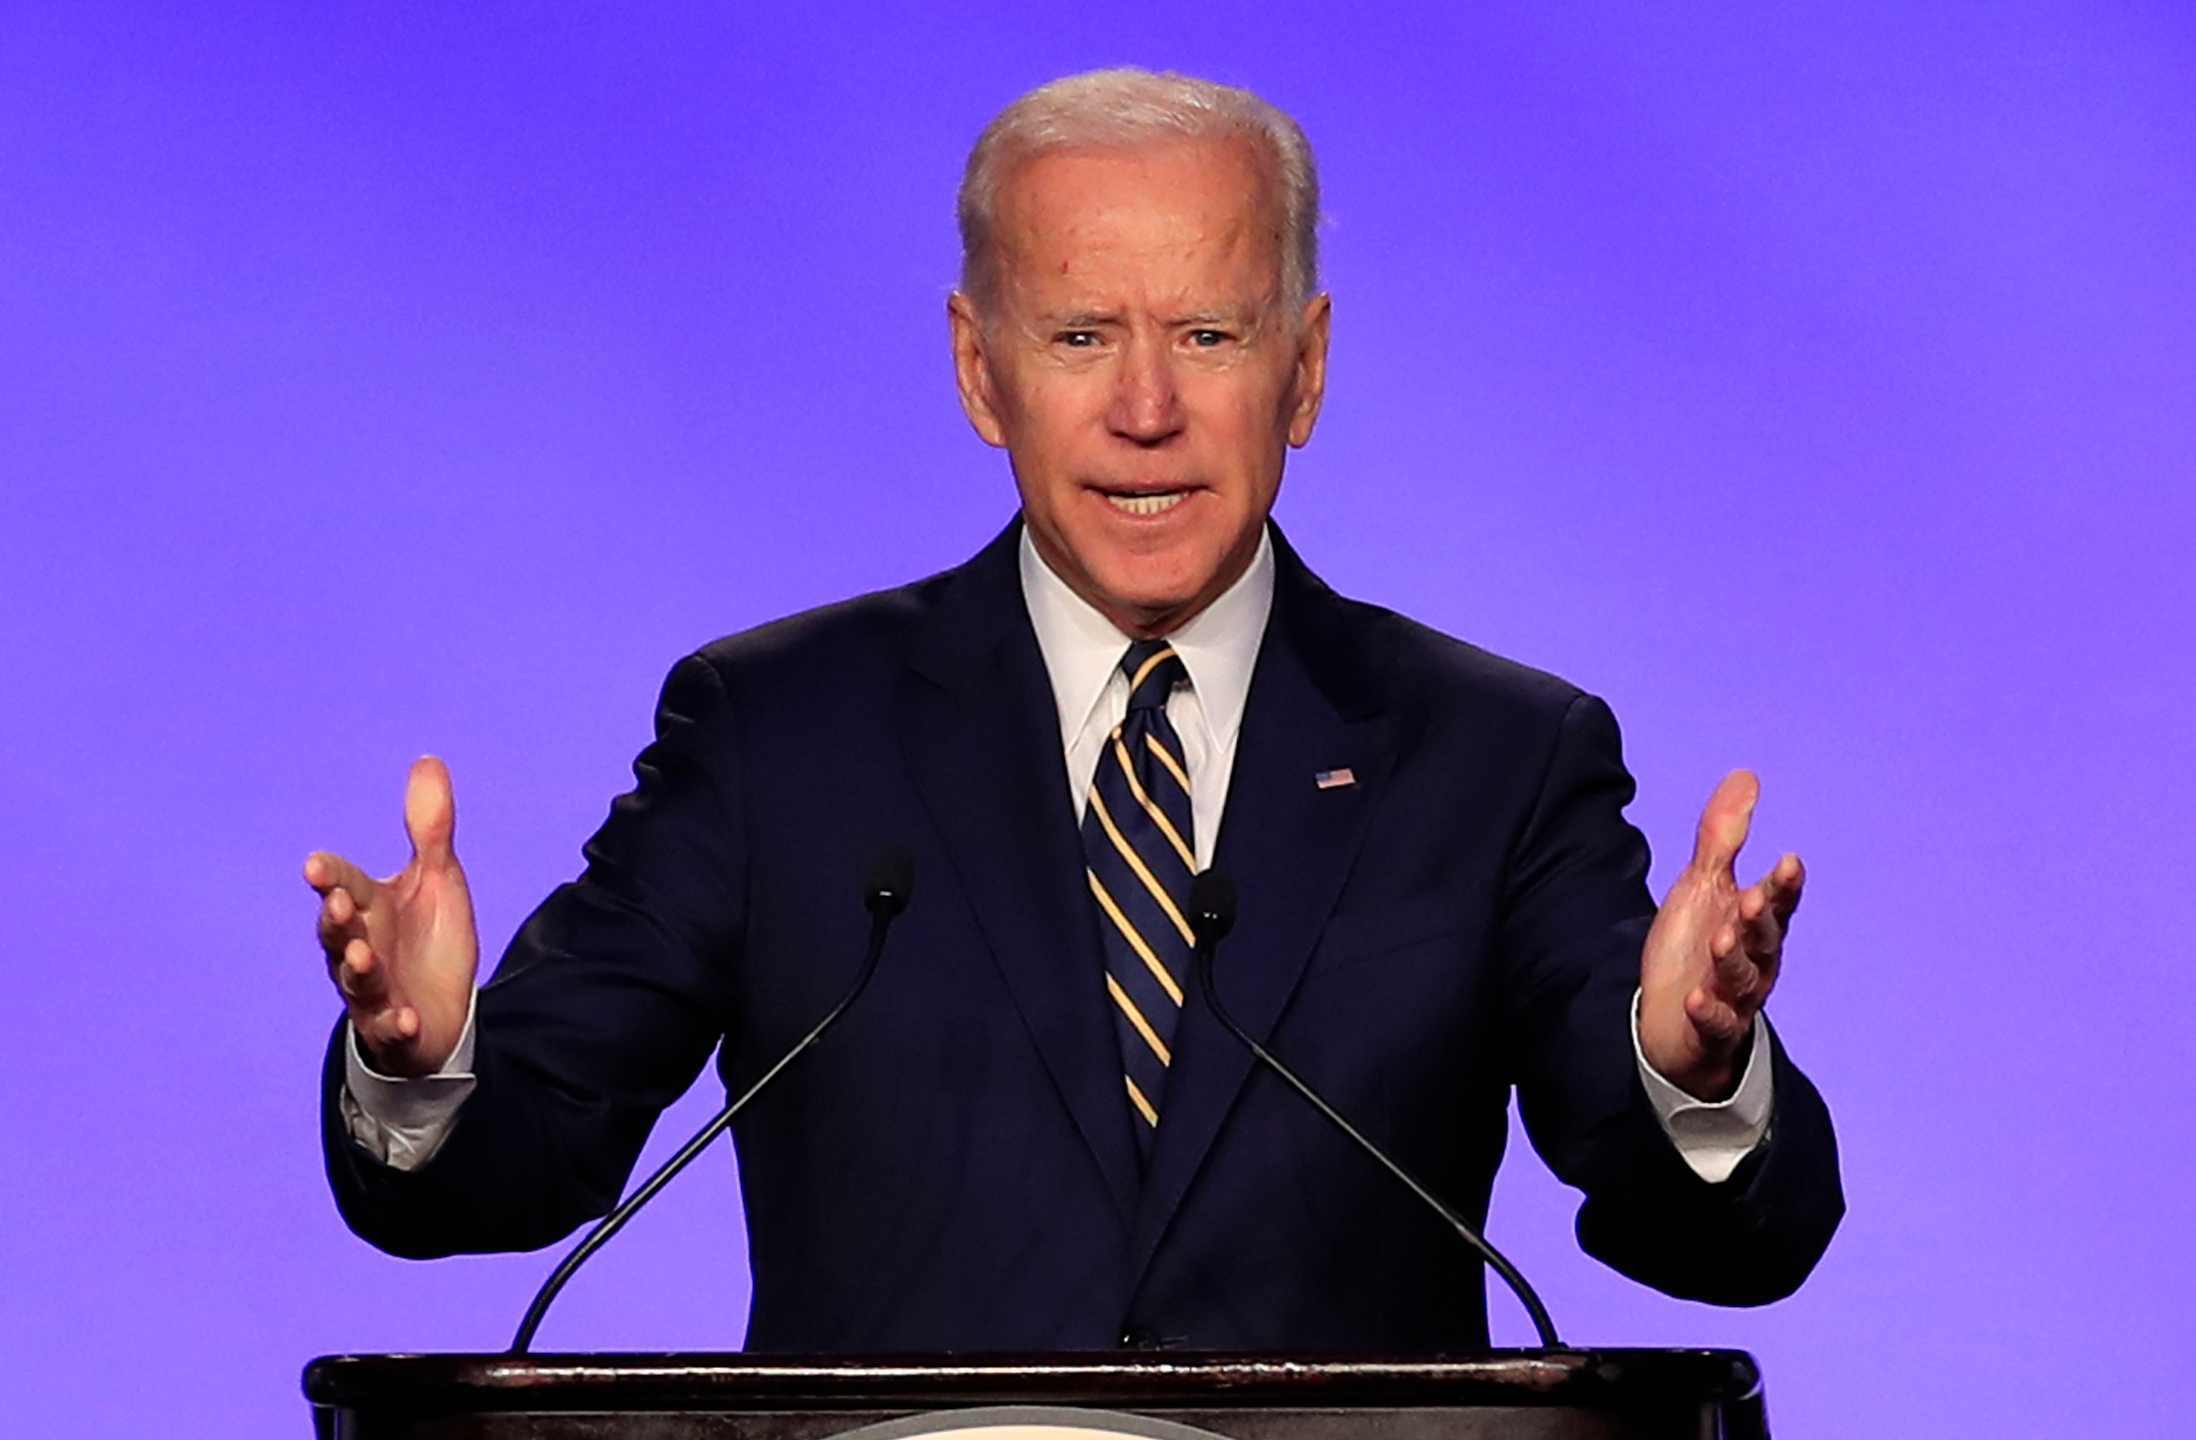 Election_2020_Joe_Biden_54825-159532.jpg39479392